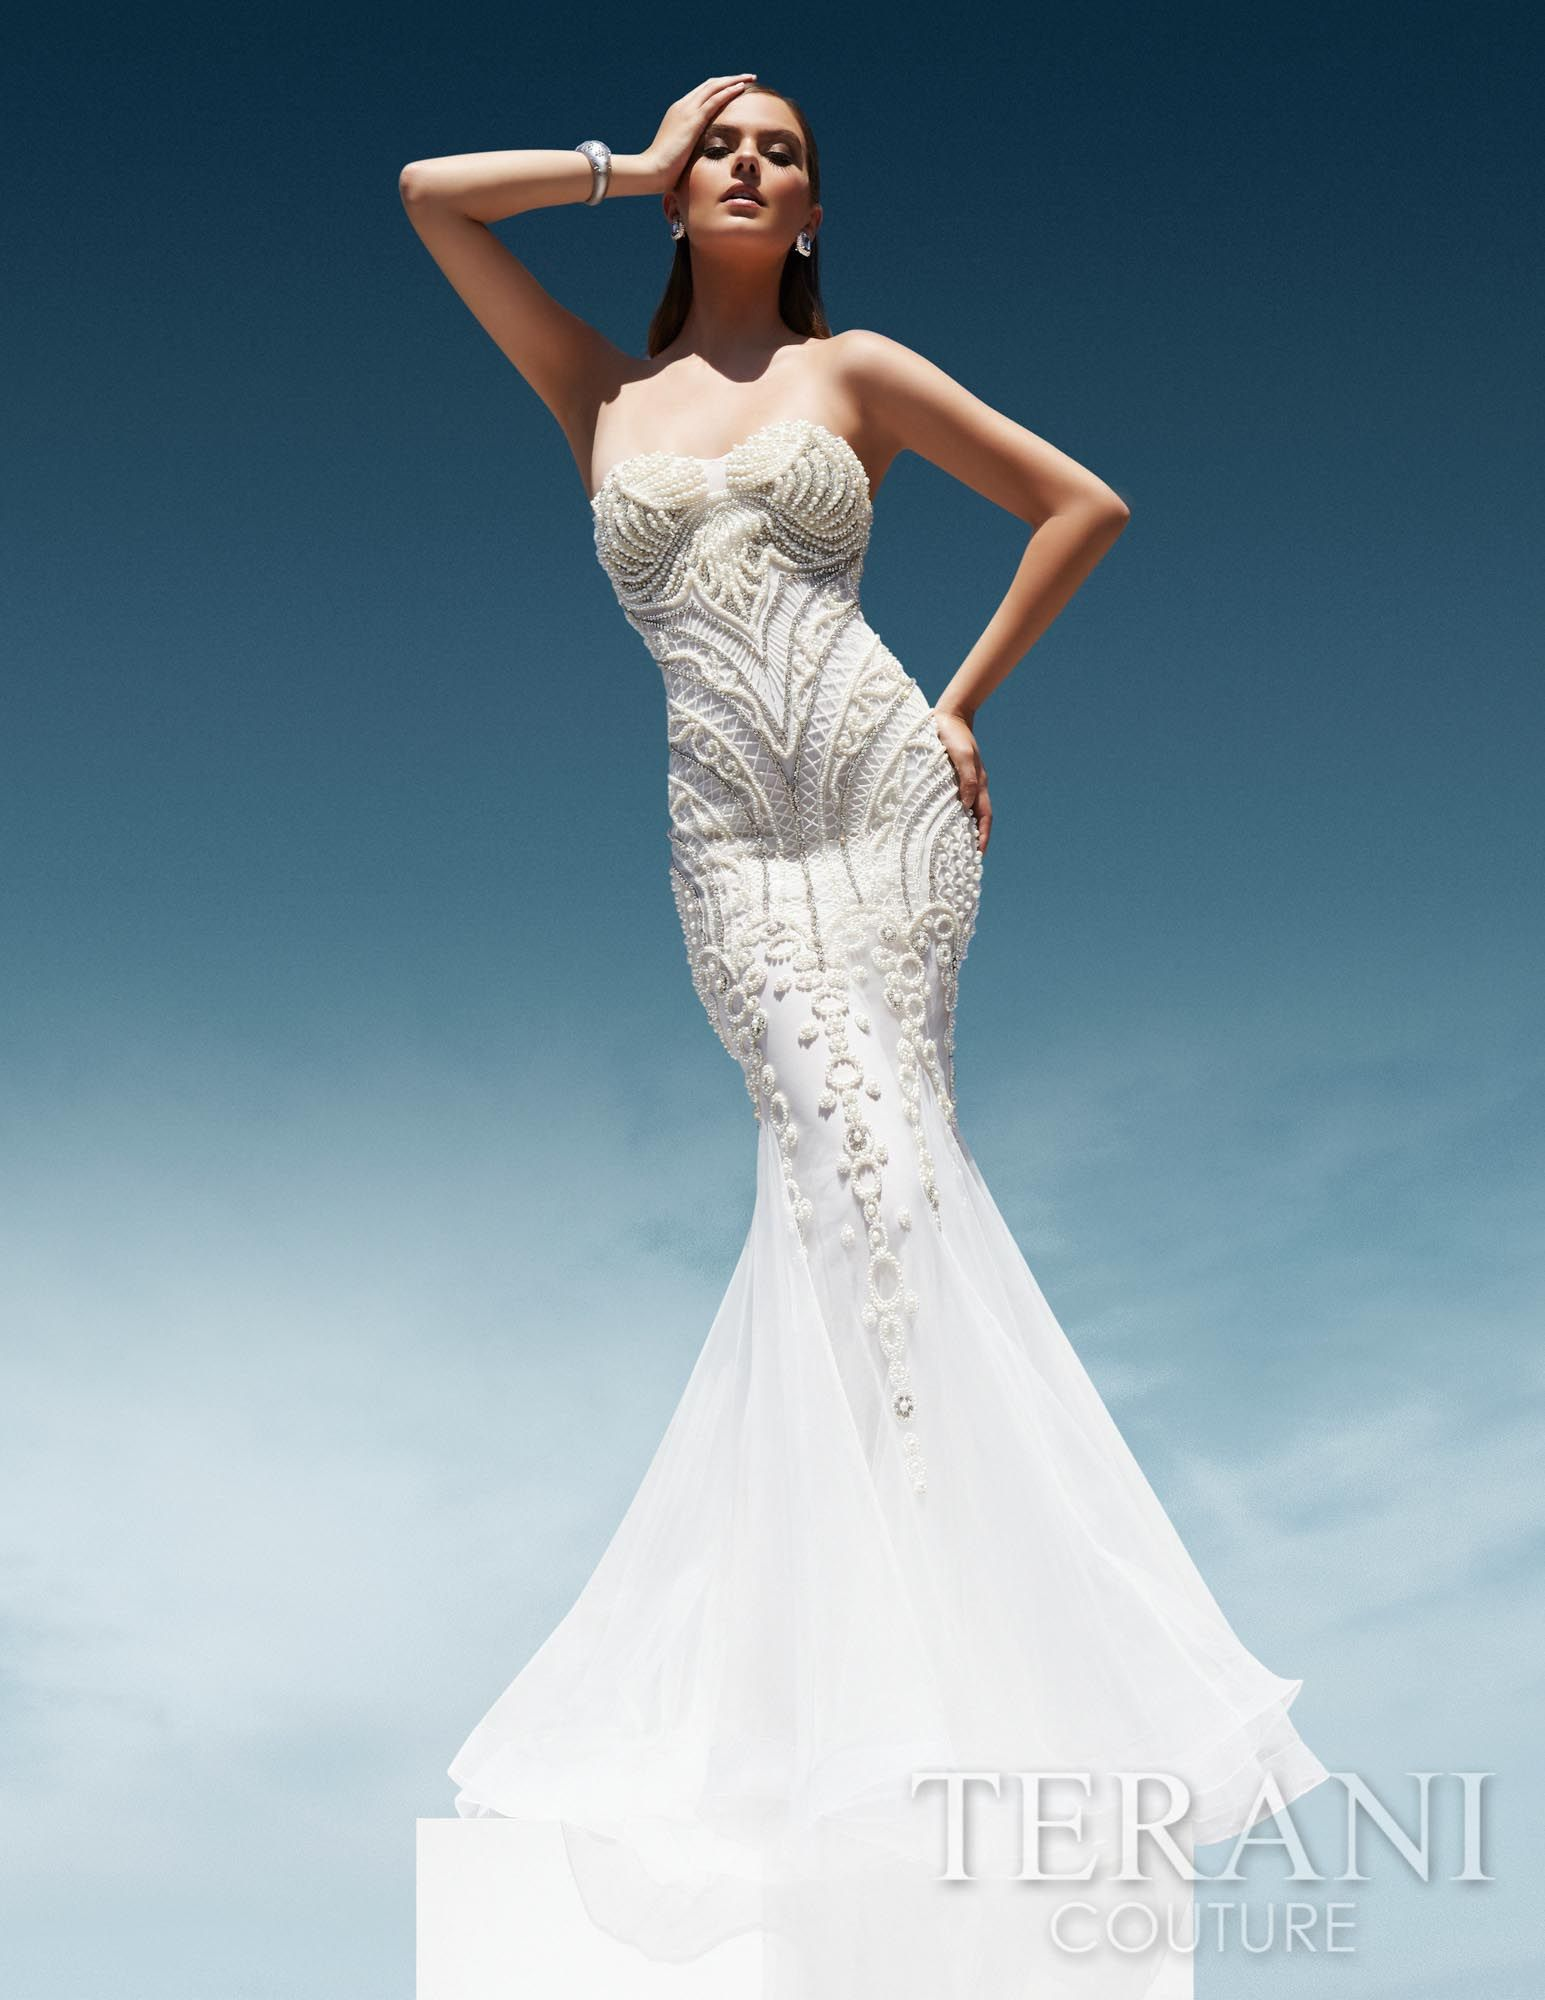 Fitted trumpet gown embellished with sequins and pearls, finished with a flared skirt composed of delicate mesh godets